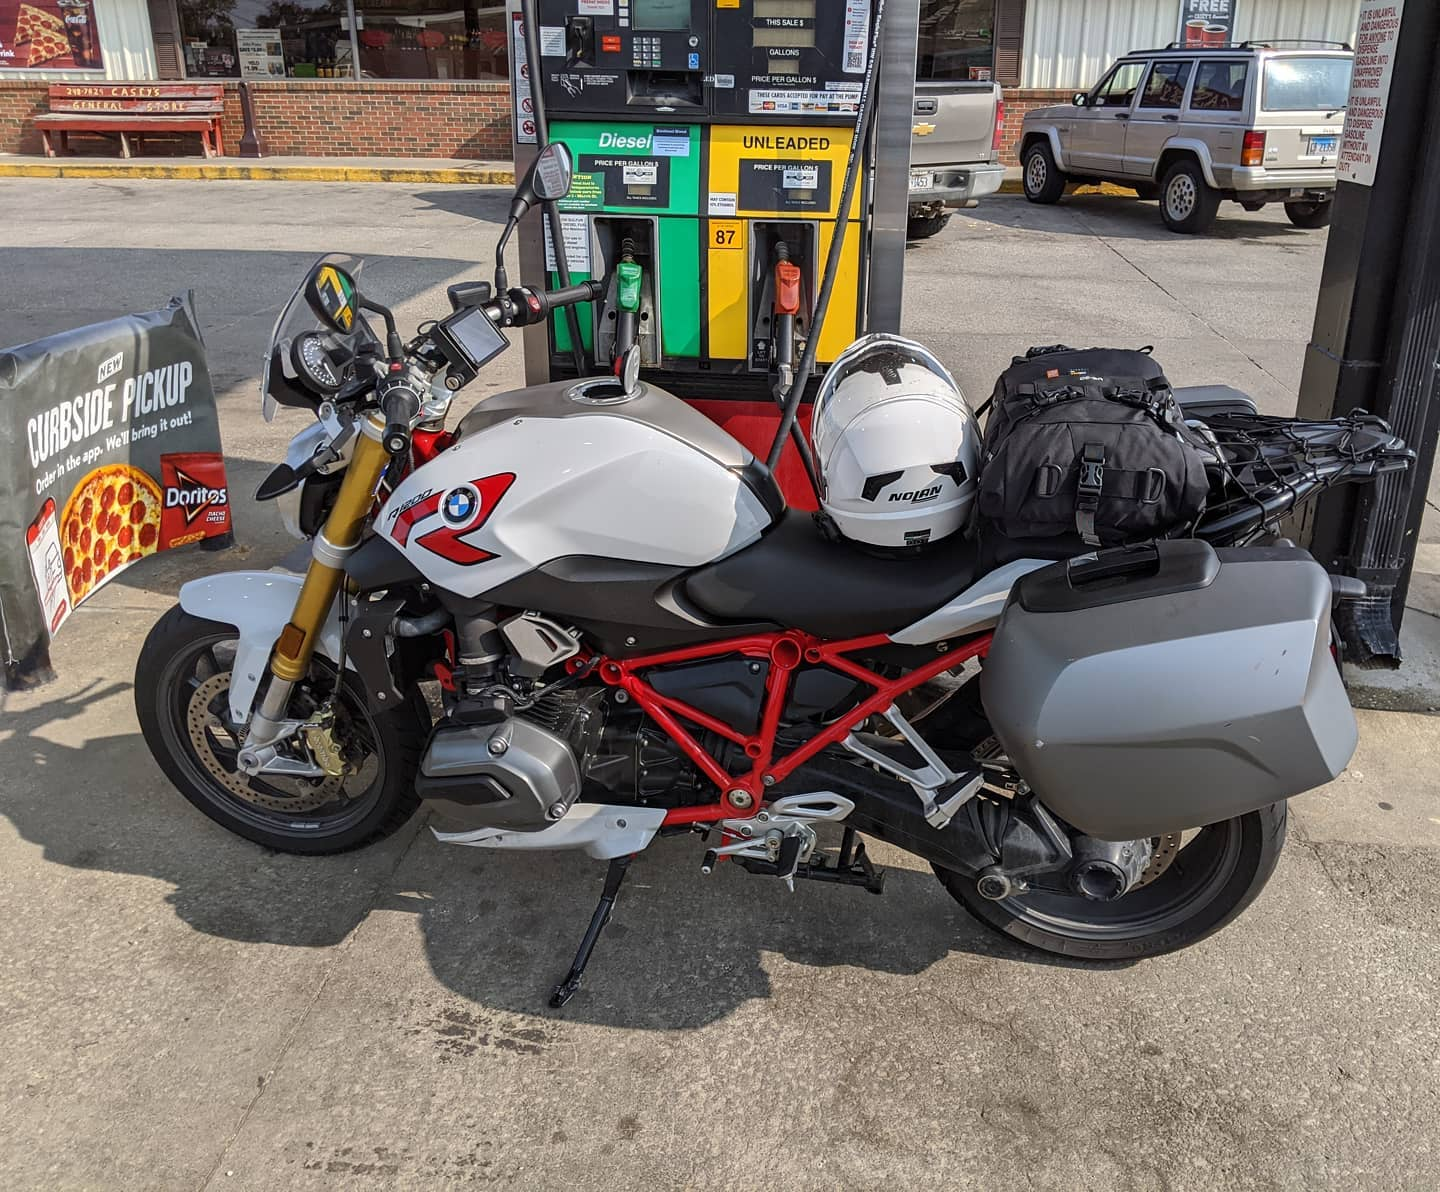 A journey of a thousand miles begins with a single step. And gas. In the middle of nowhere, Illinois. #motorrad #r1200r #roadtrip